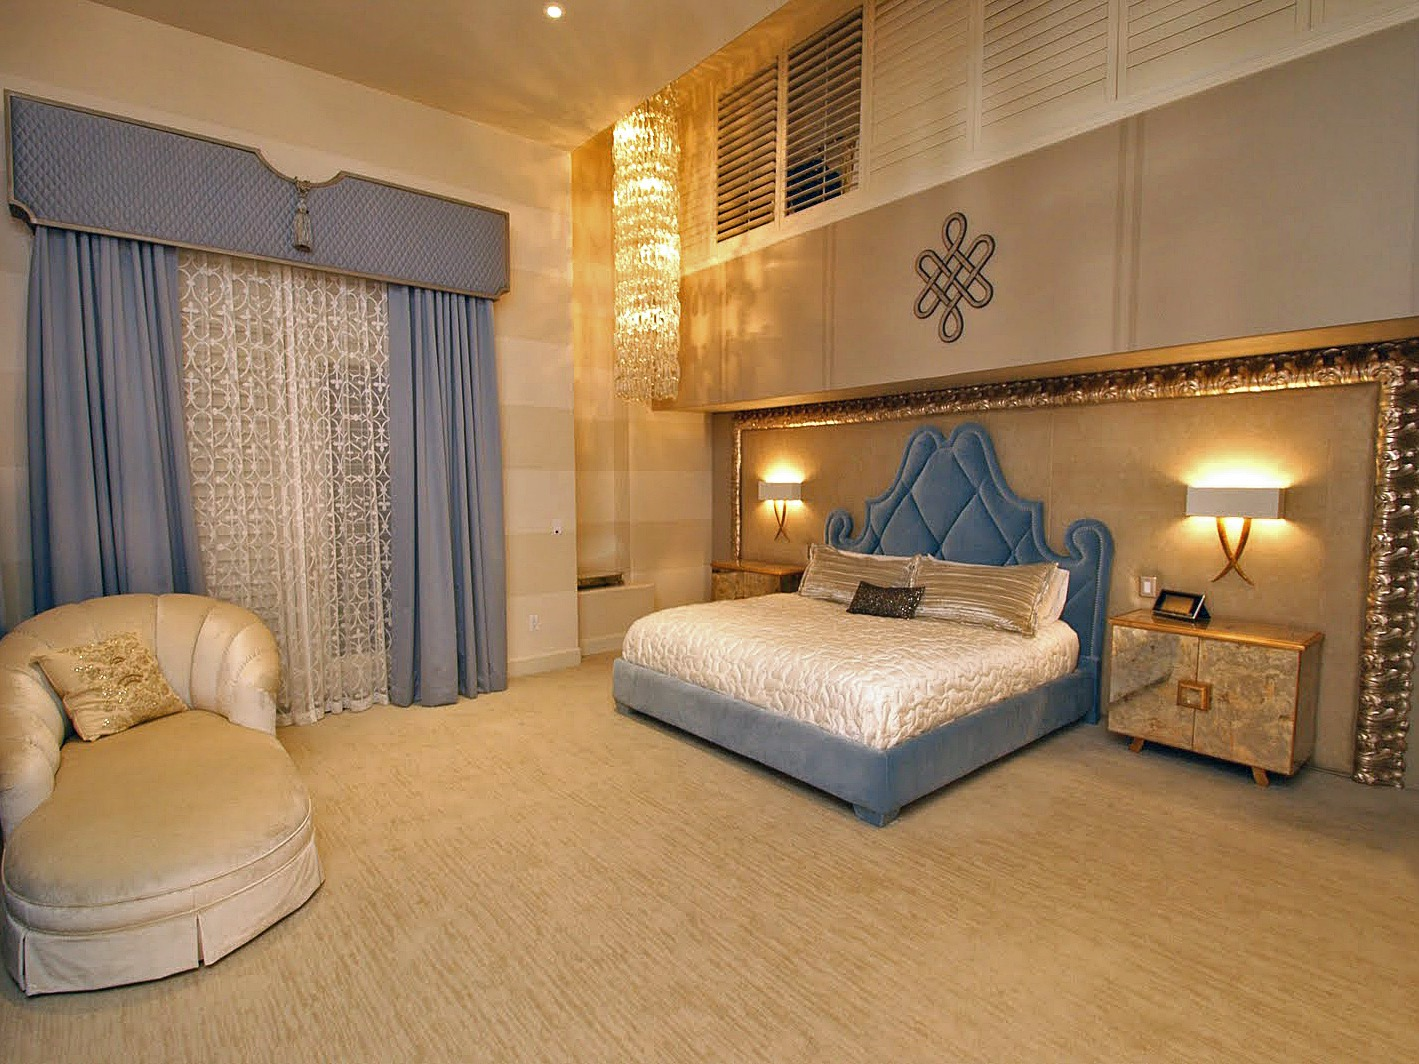 Luxurious Master Bedroom With Lounge Area (Image 16 of 28)